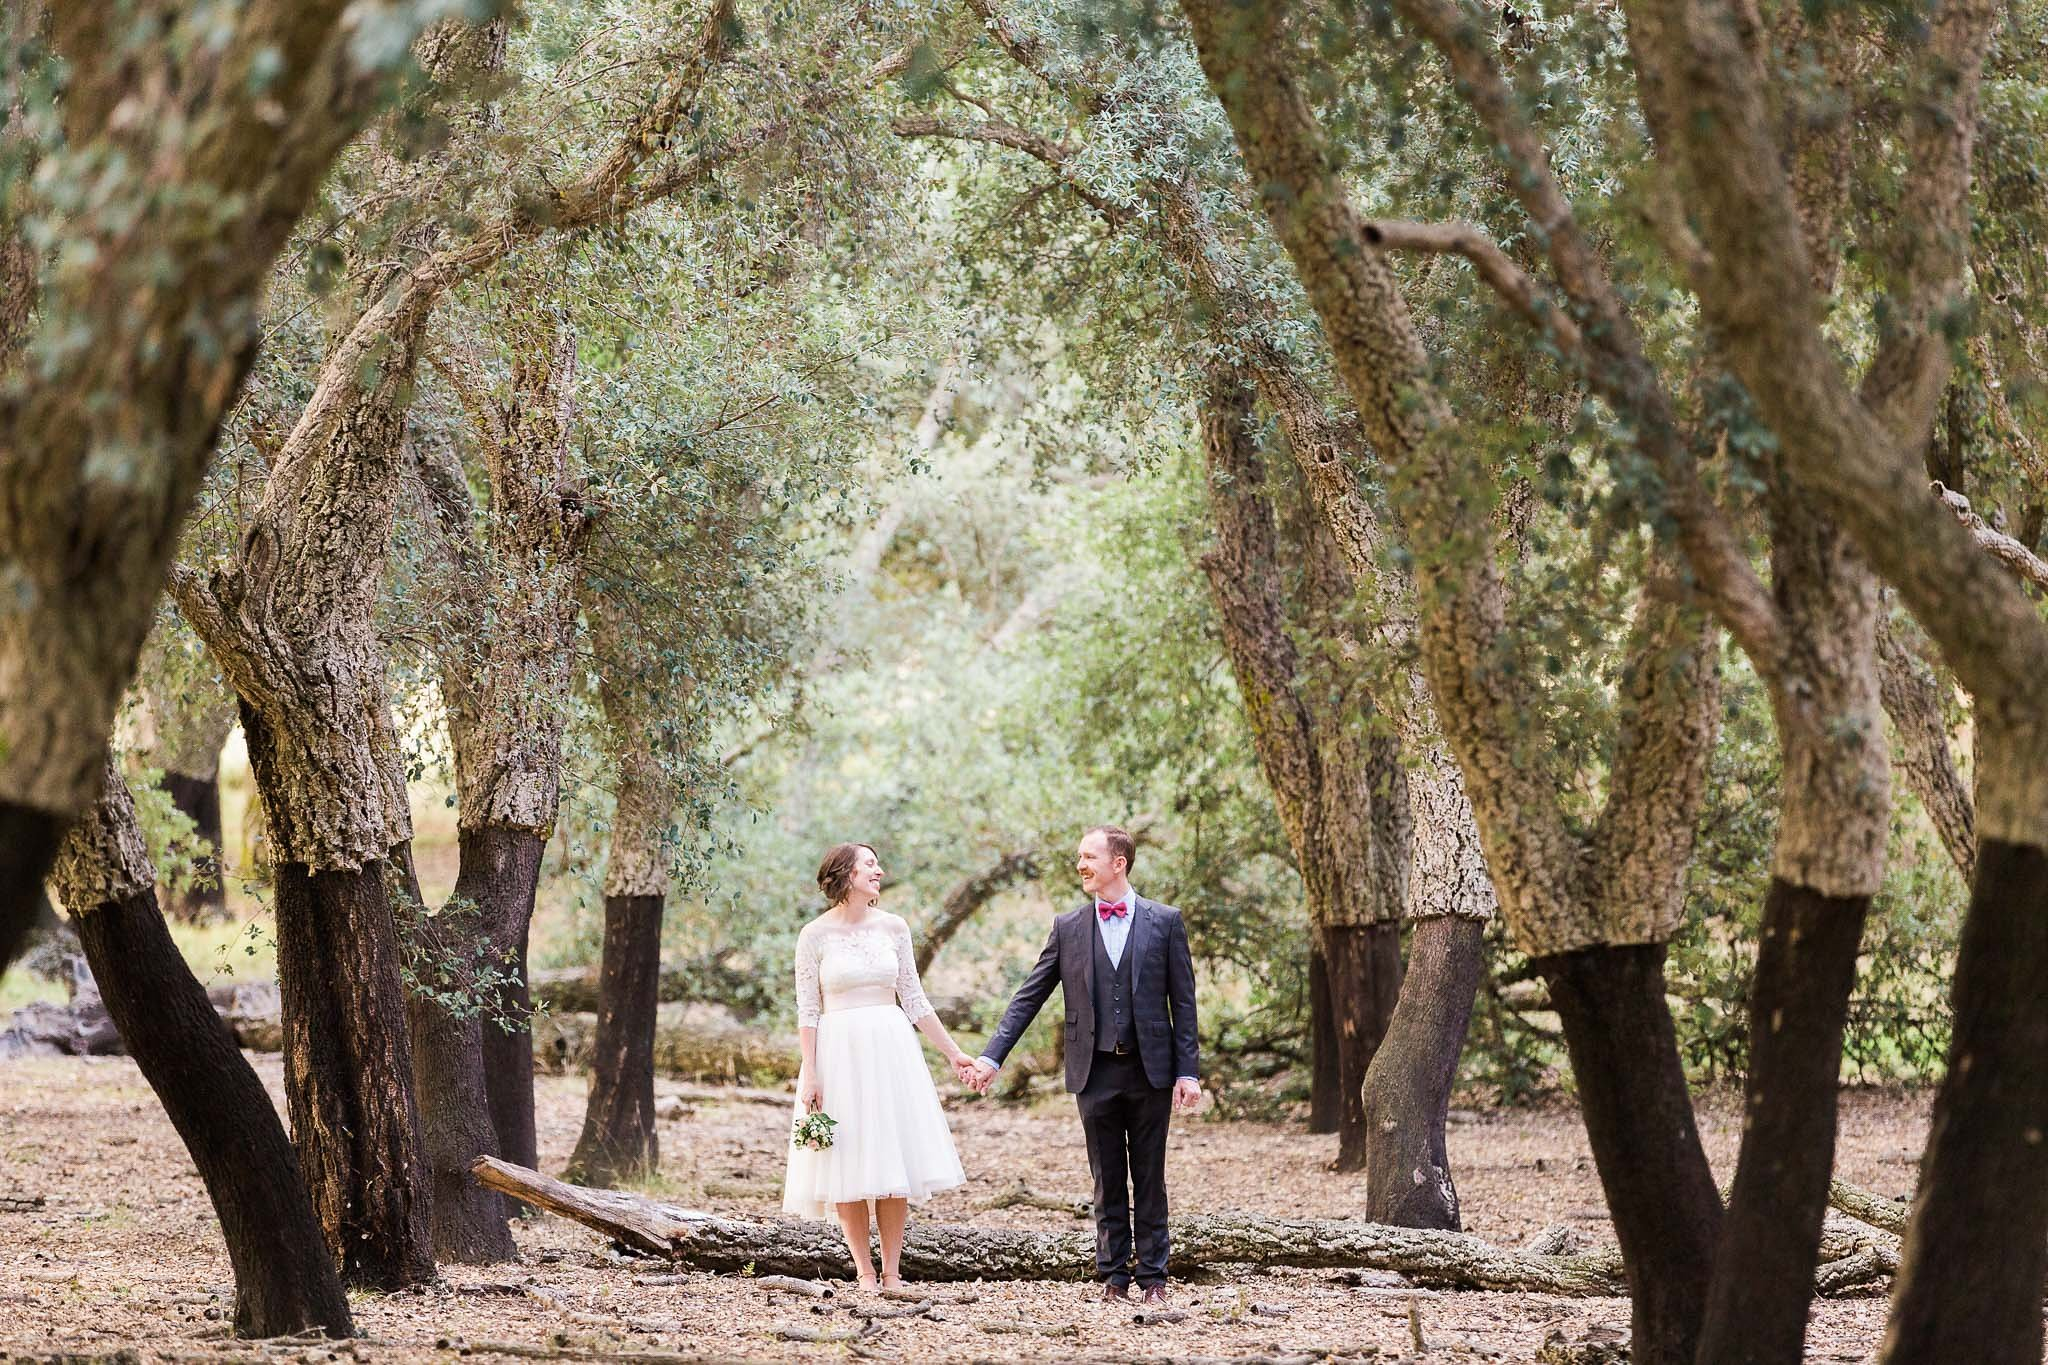 Bride and groom pose for photographs in a row of cork trees at the National Arboretum